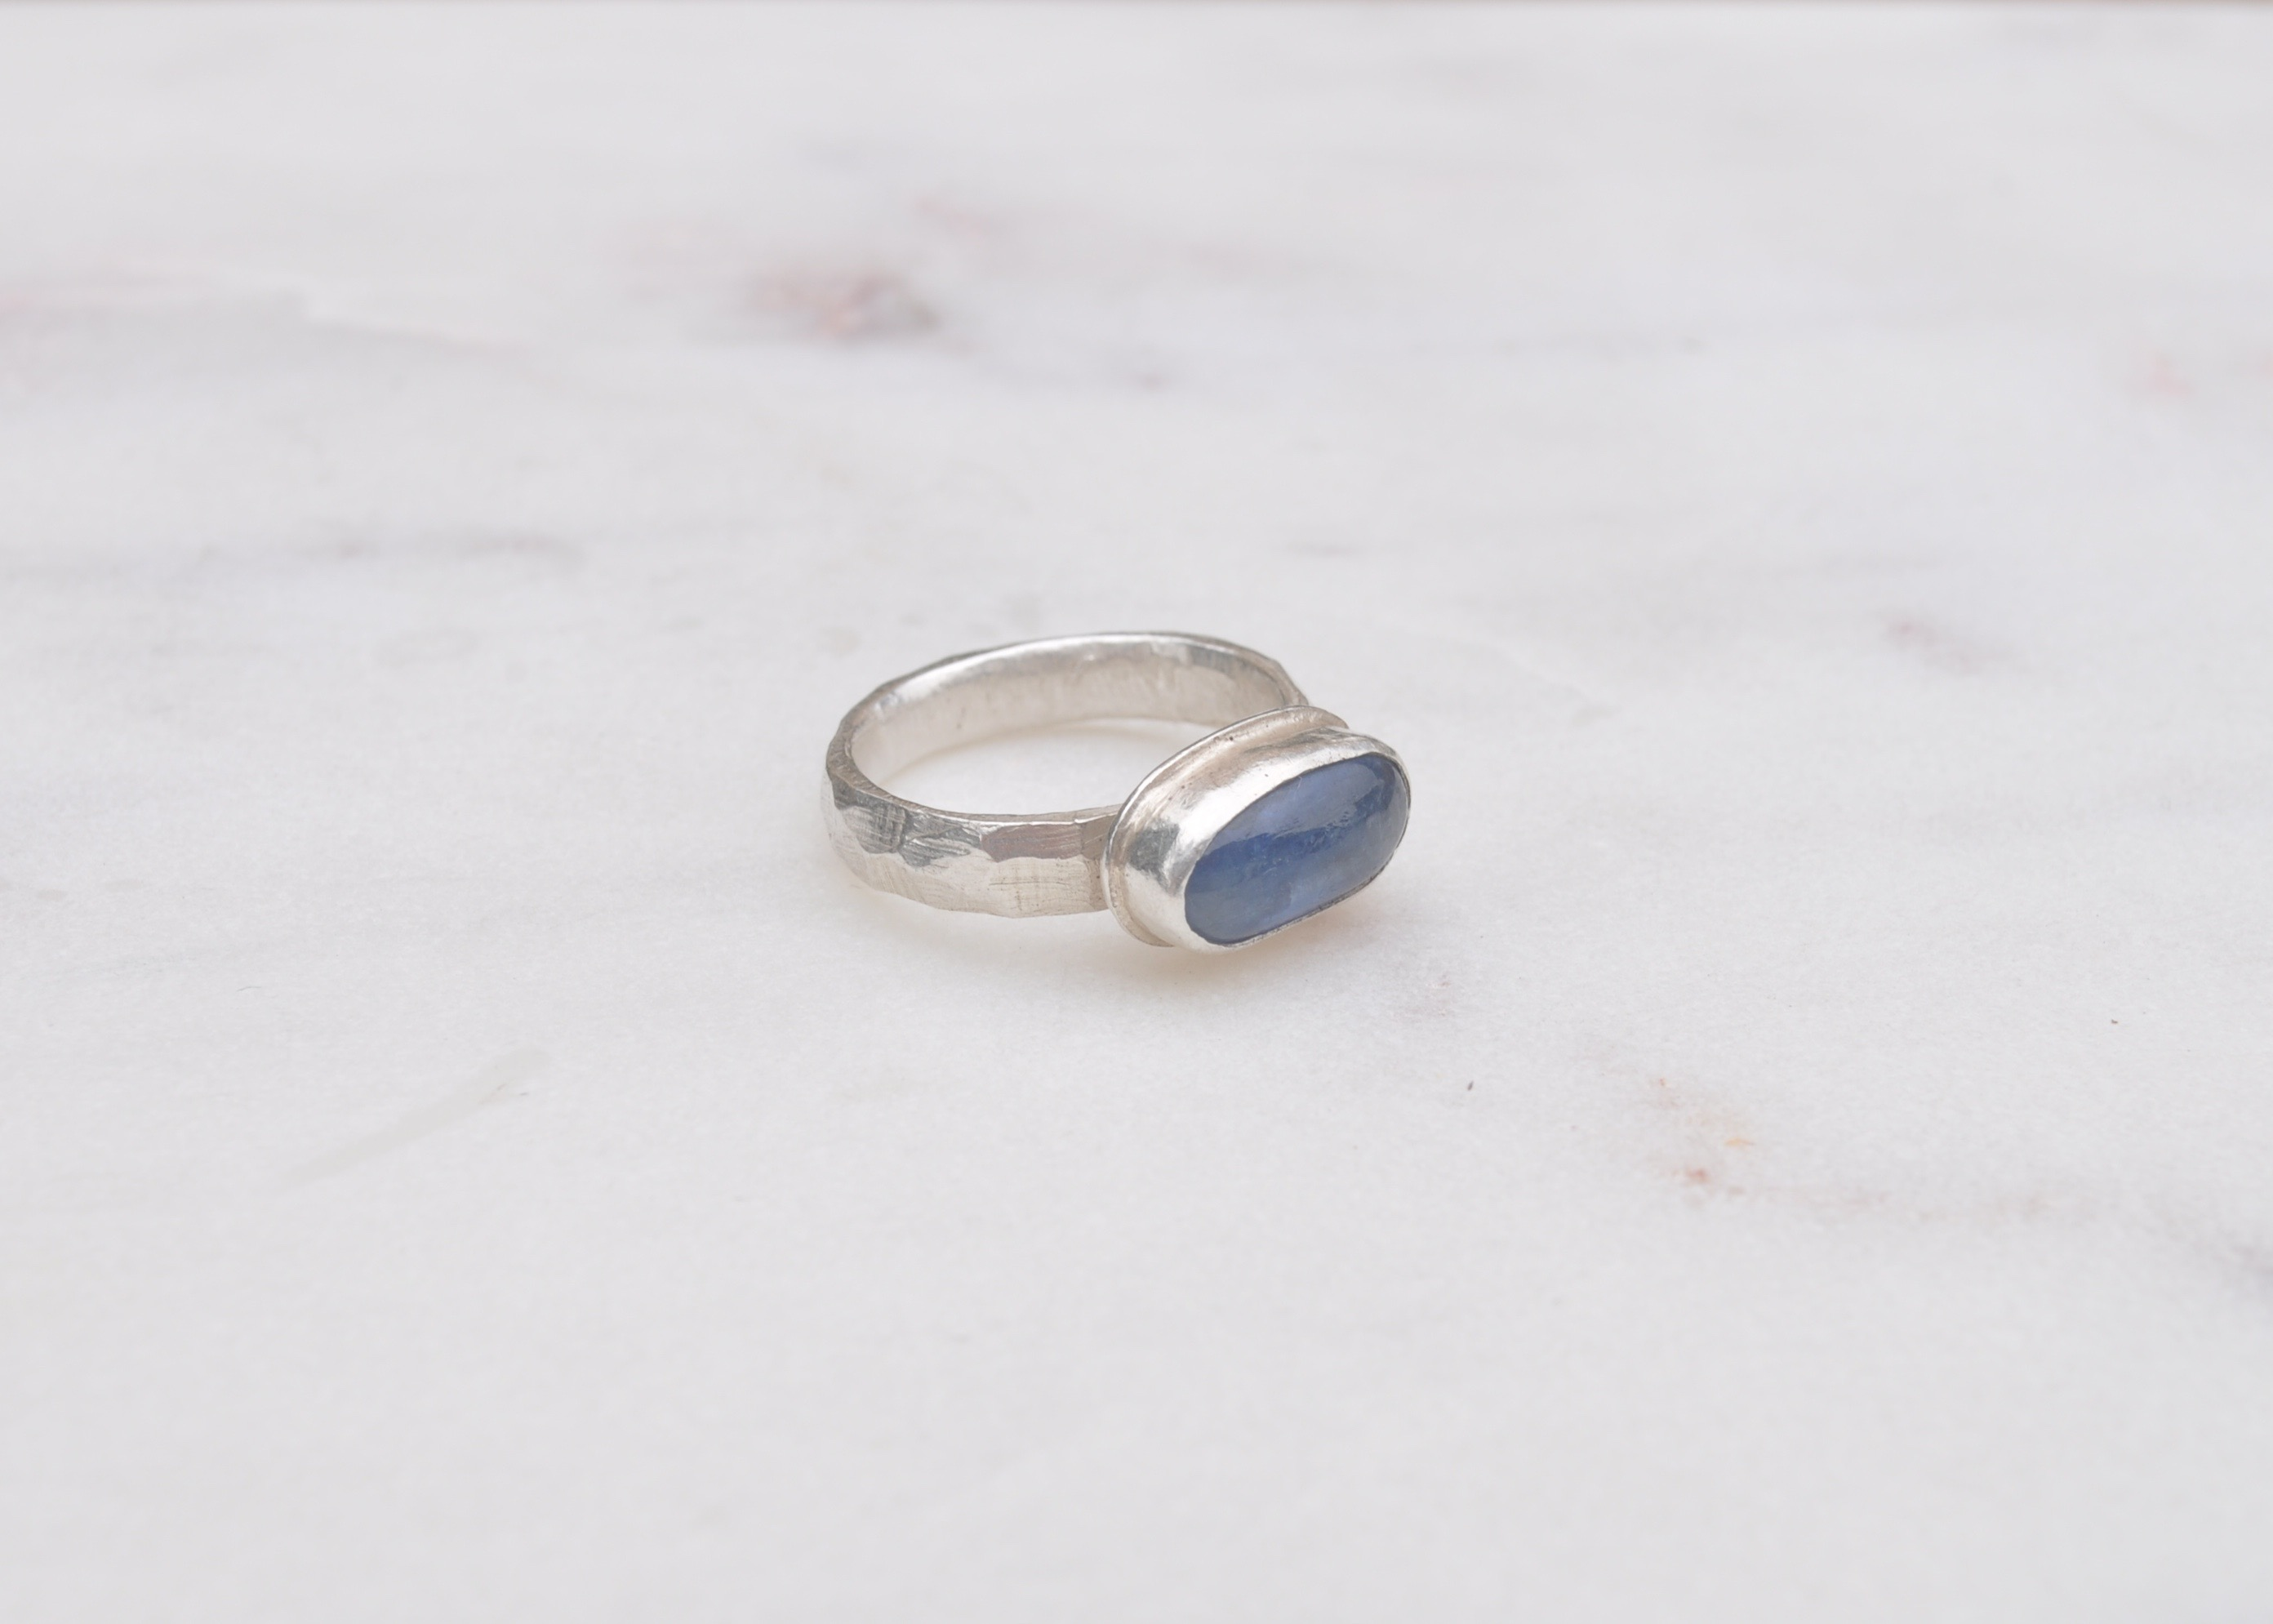 One off, limited edition designs. By Clare Quinlan. Kyanite stone set on a faceted sterling silver band.